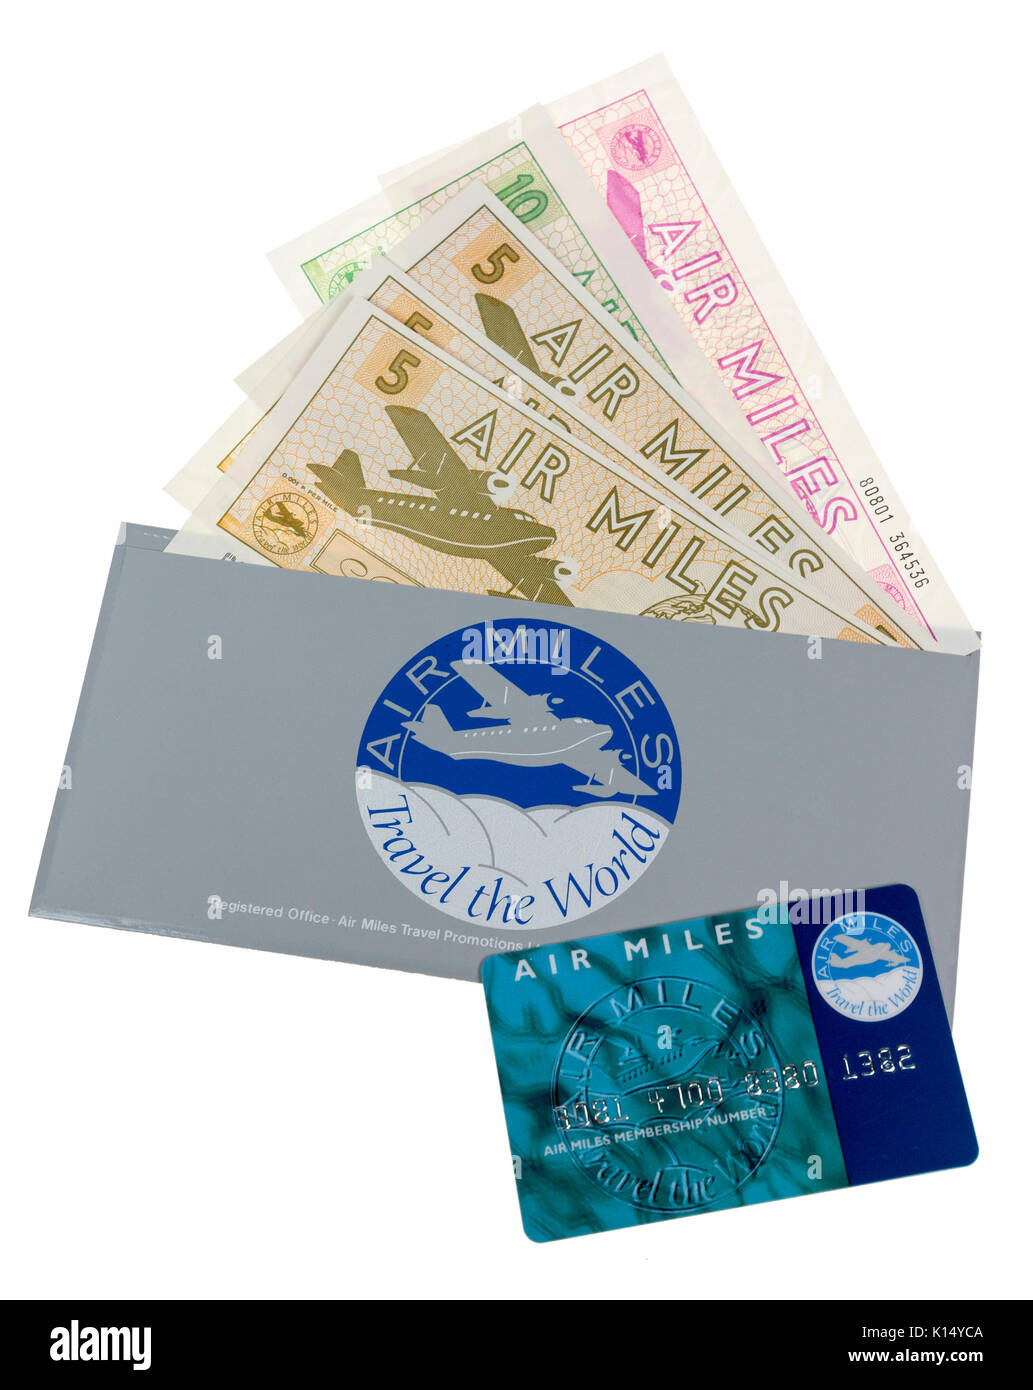 Air Miles card and vouchers. In the UK the reward program scheme began in 1986 - Stock Image